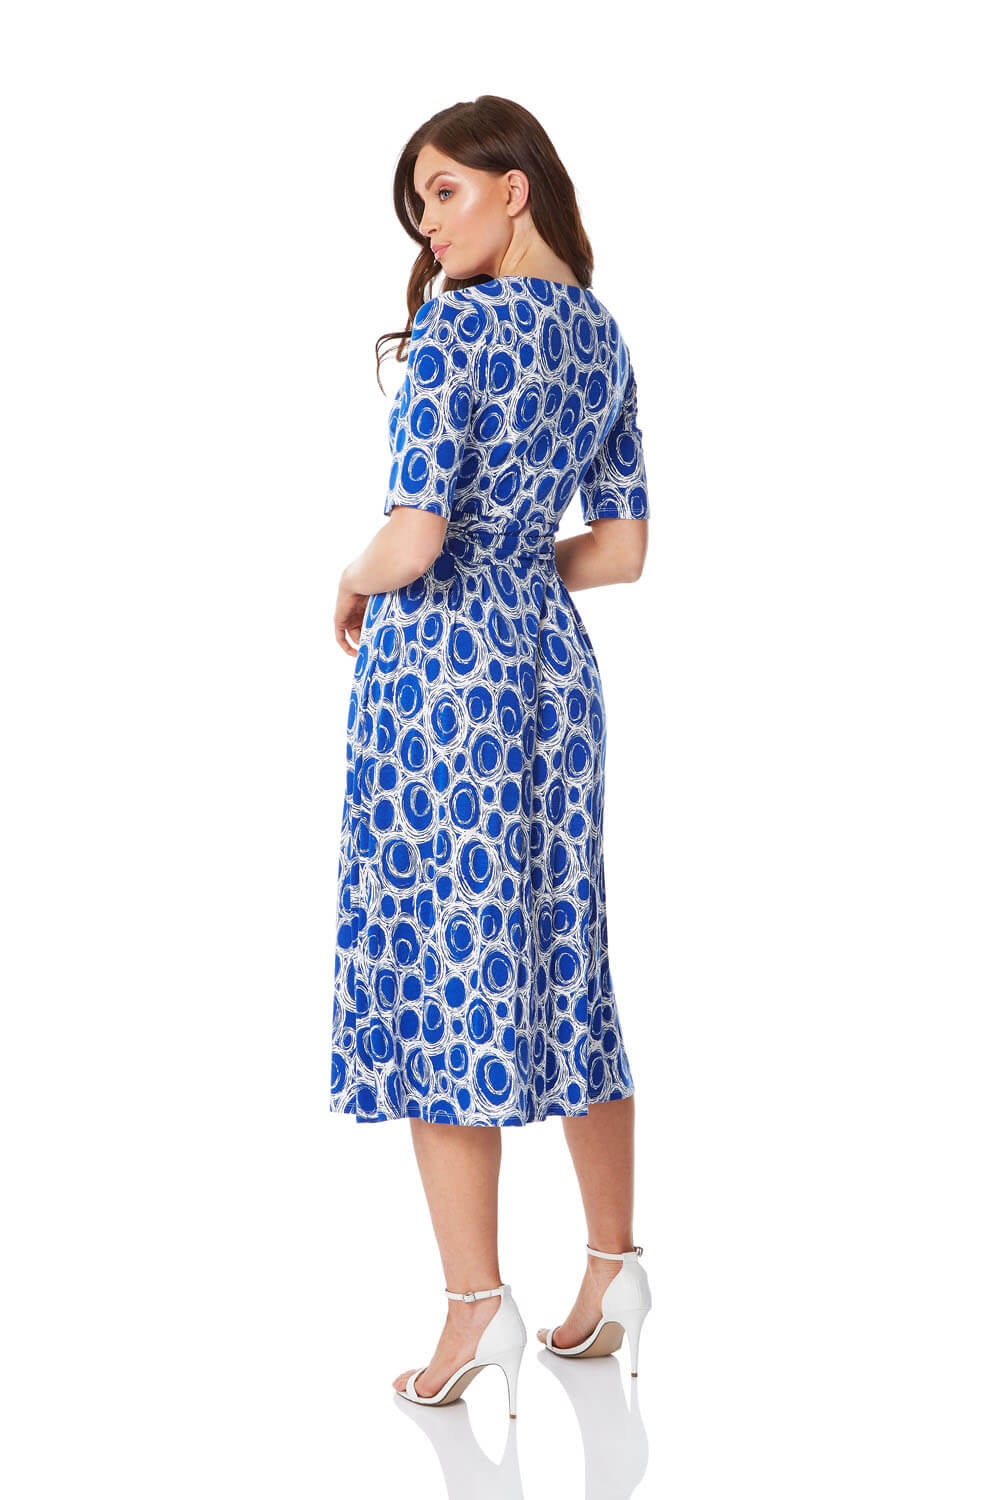 Roman-Originals-Short-Sleeve-Printed-Fit-and-Flare-Dress thumbnail 9